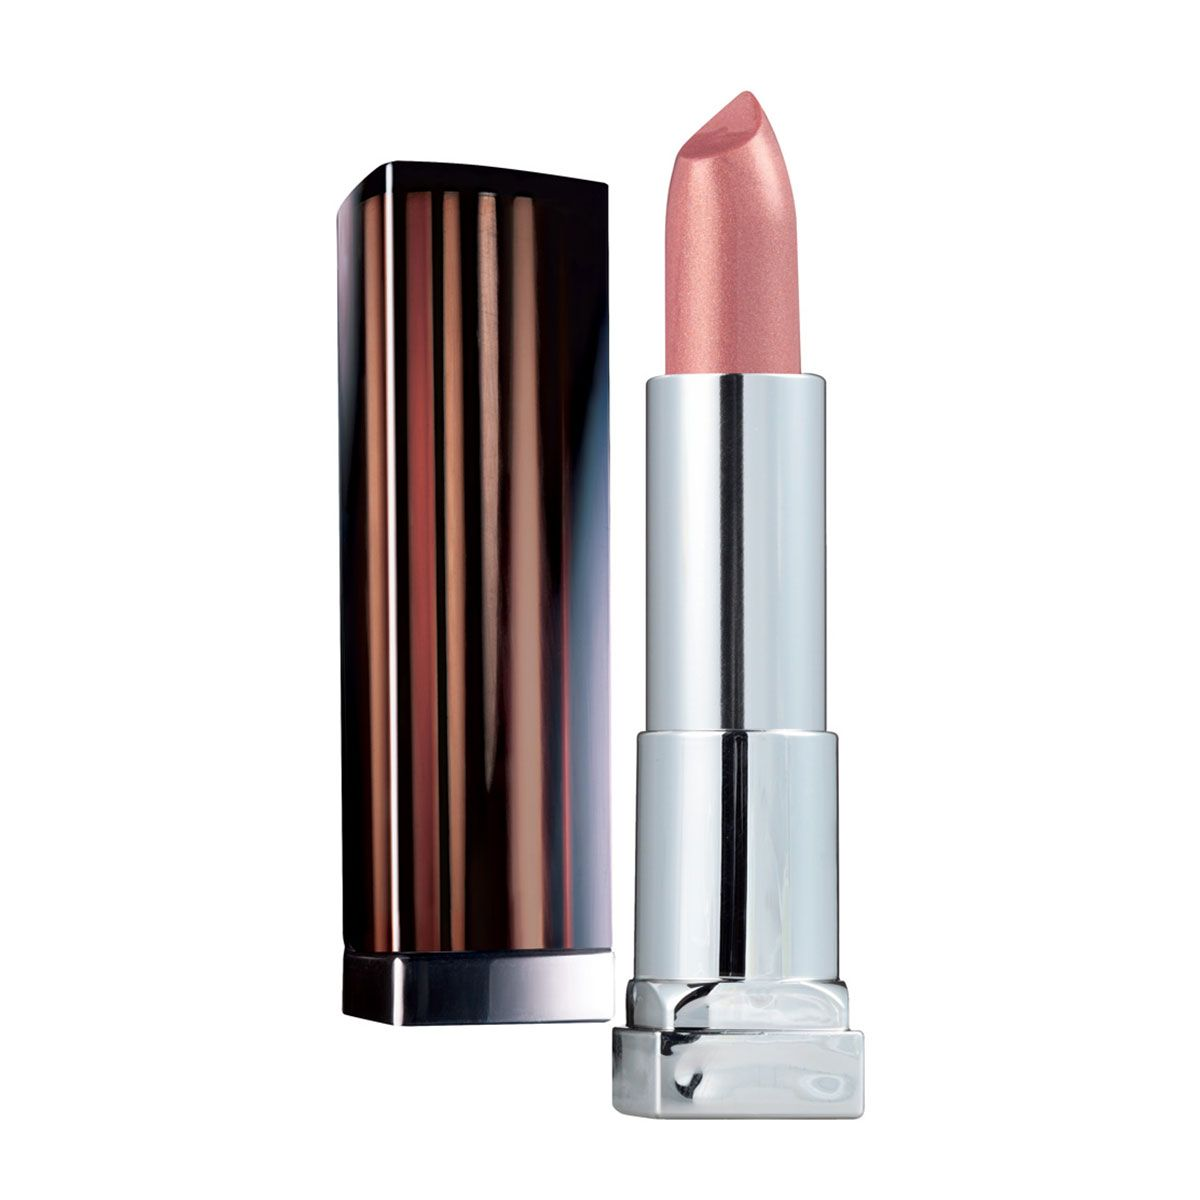 Maybelline Color Sensational Lipcolor in Nearly There